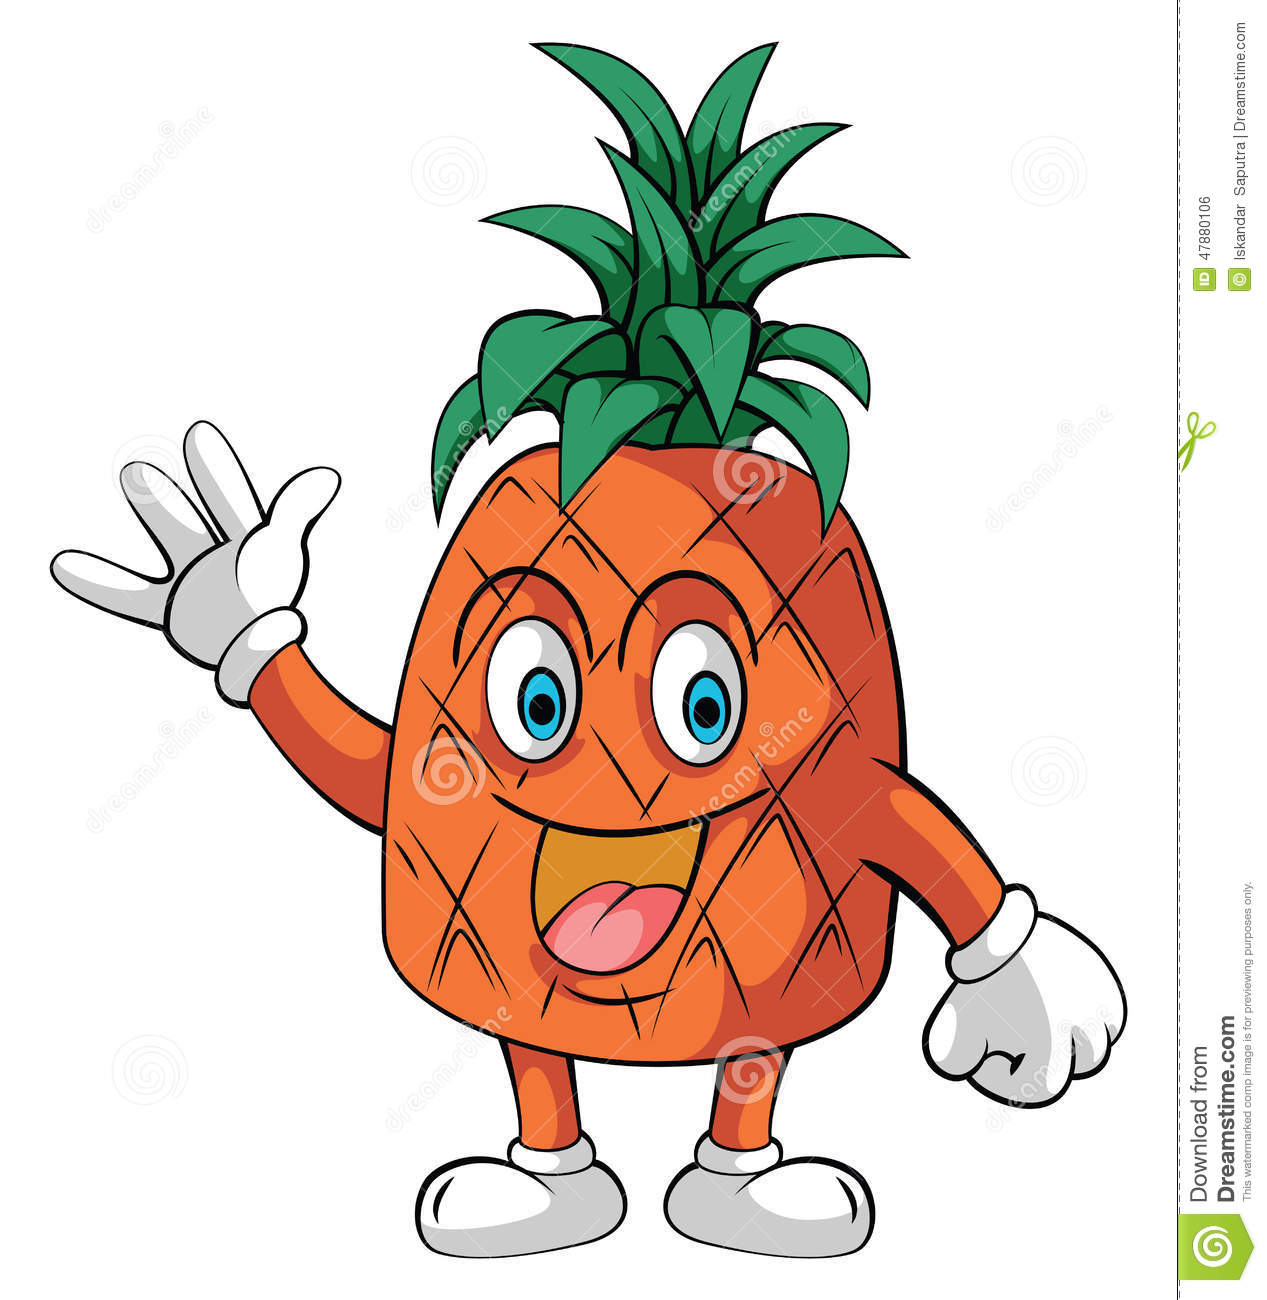 File Orange animated further Smiggle likewise Clipart Pizza Box also Clipart S le Vial 20ml also Hold My Juice Box Watch This Toddler T. on apple juice box clipart